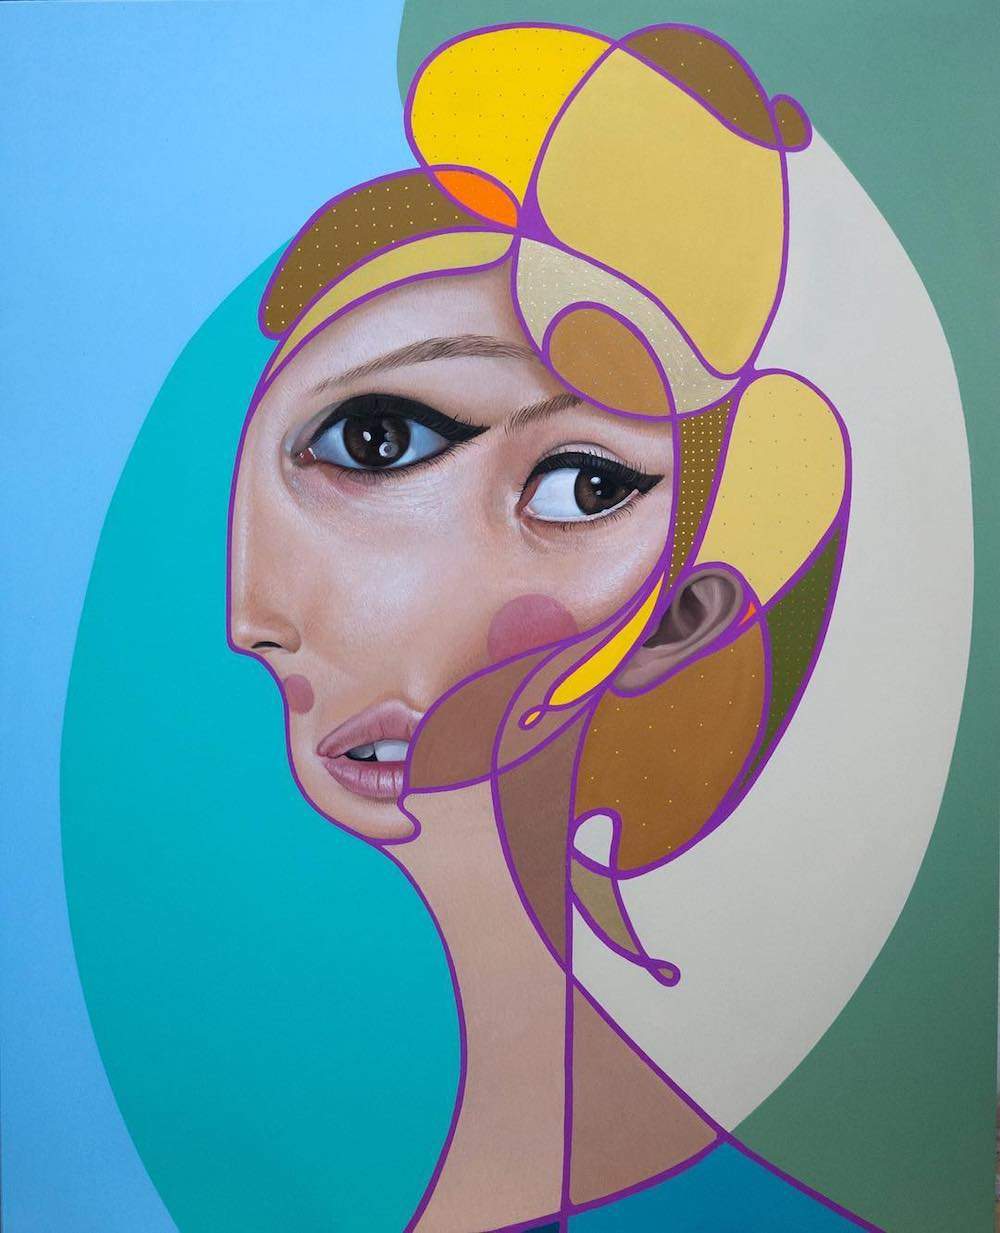 New Paintings Which Combine Cubist and Realist Elements by 'Belin' Artes & contextos BelinUpdate 04